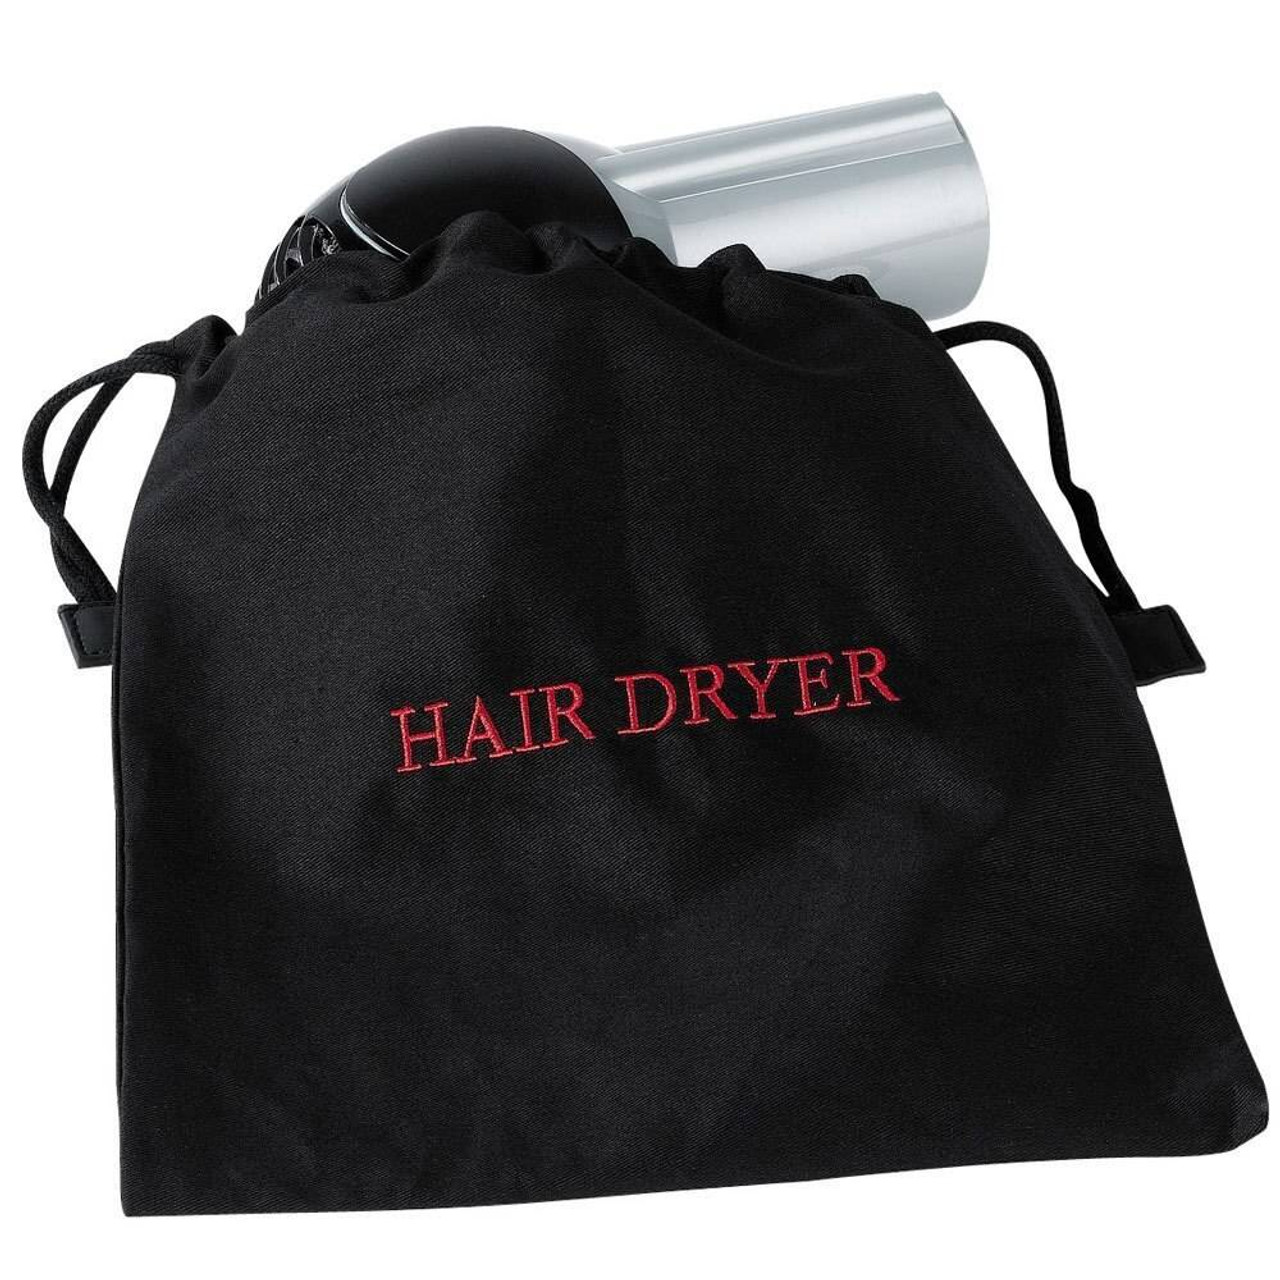 HOSPITALITY 1 SOURCE HAIR DRYER BAGS or HOSPITALITY 1 SOURCE - ALL STYLES